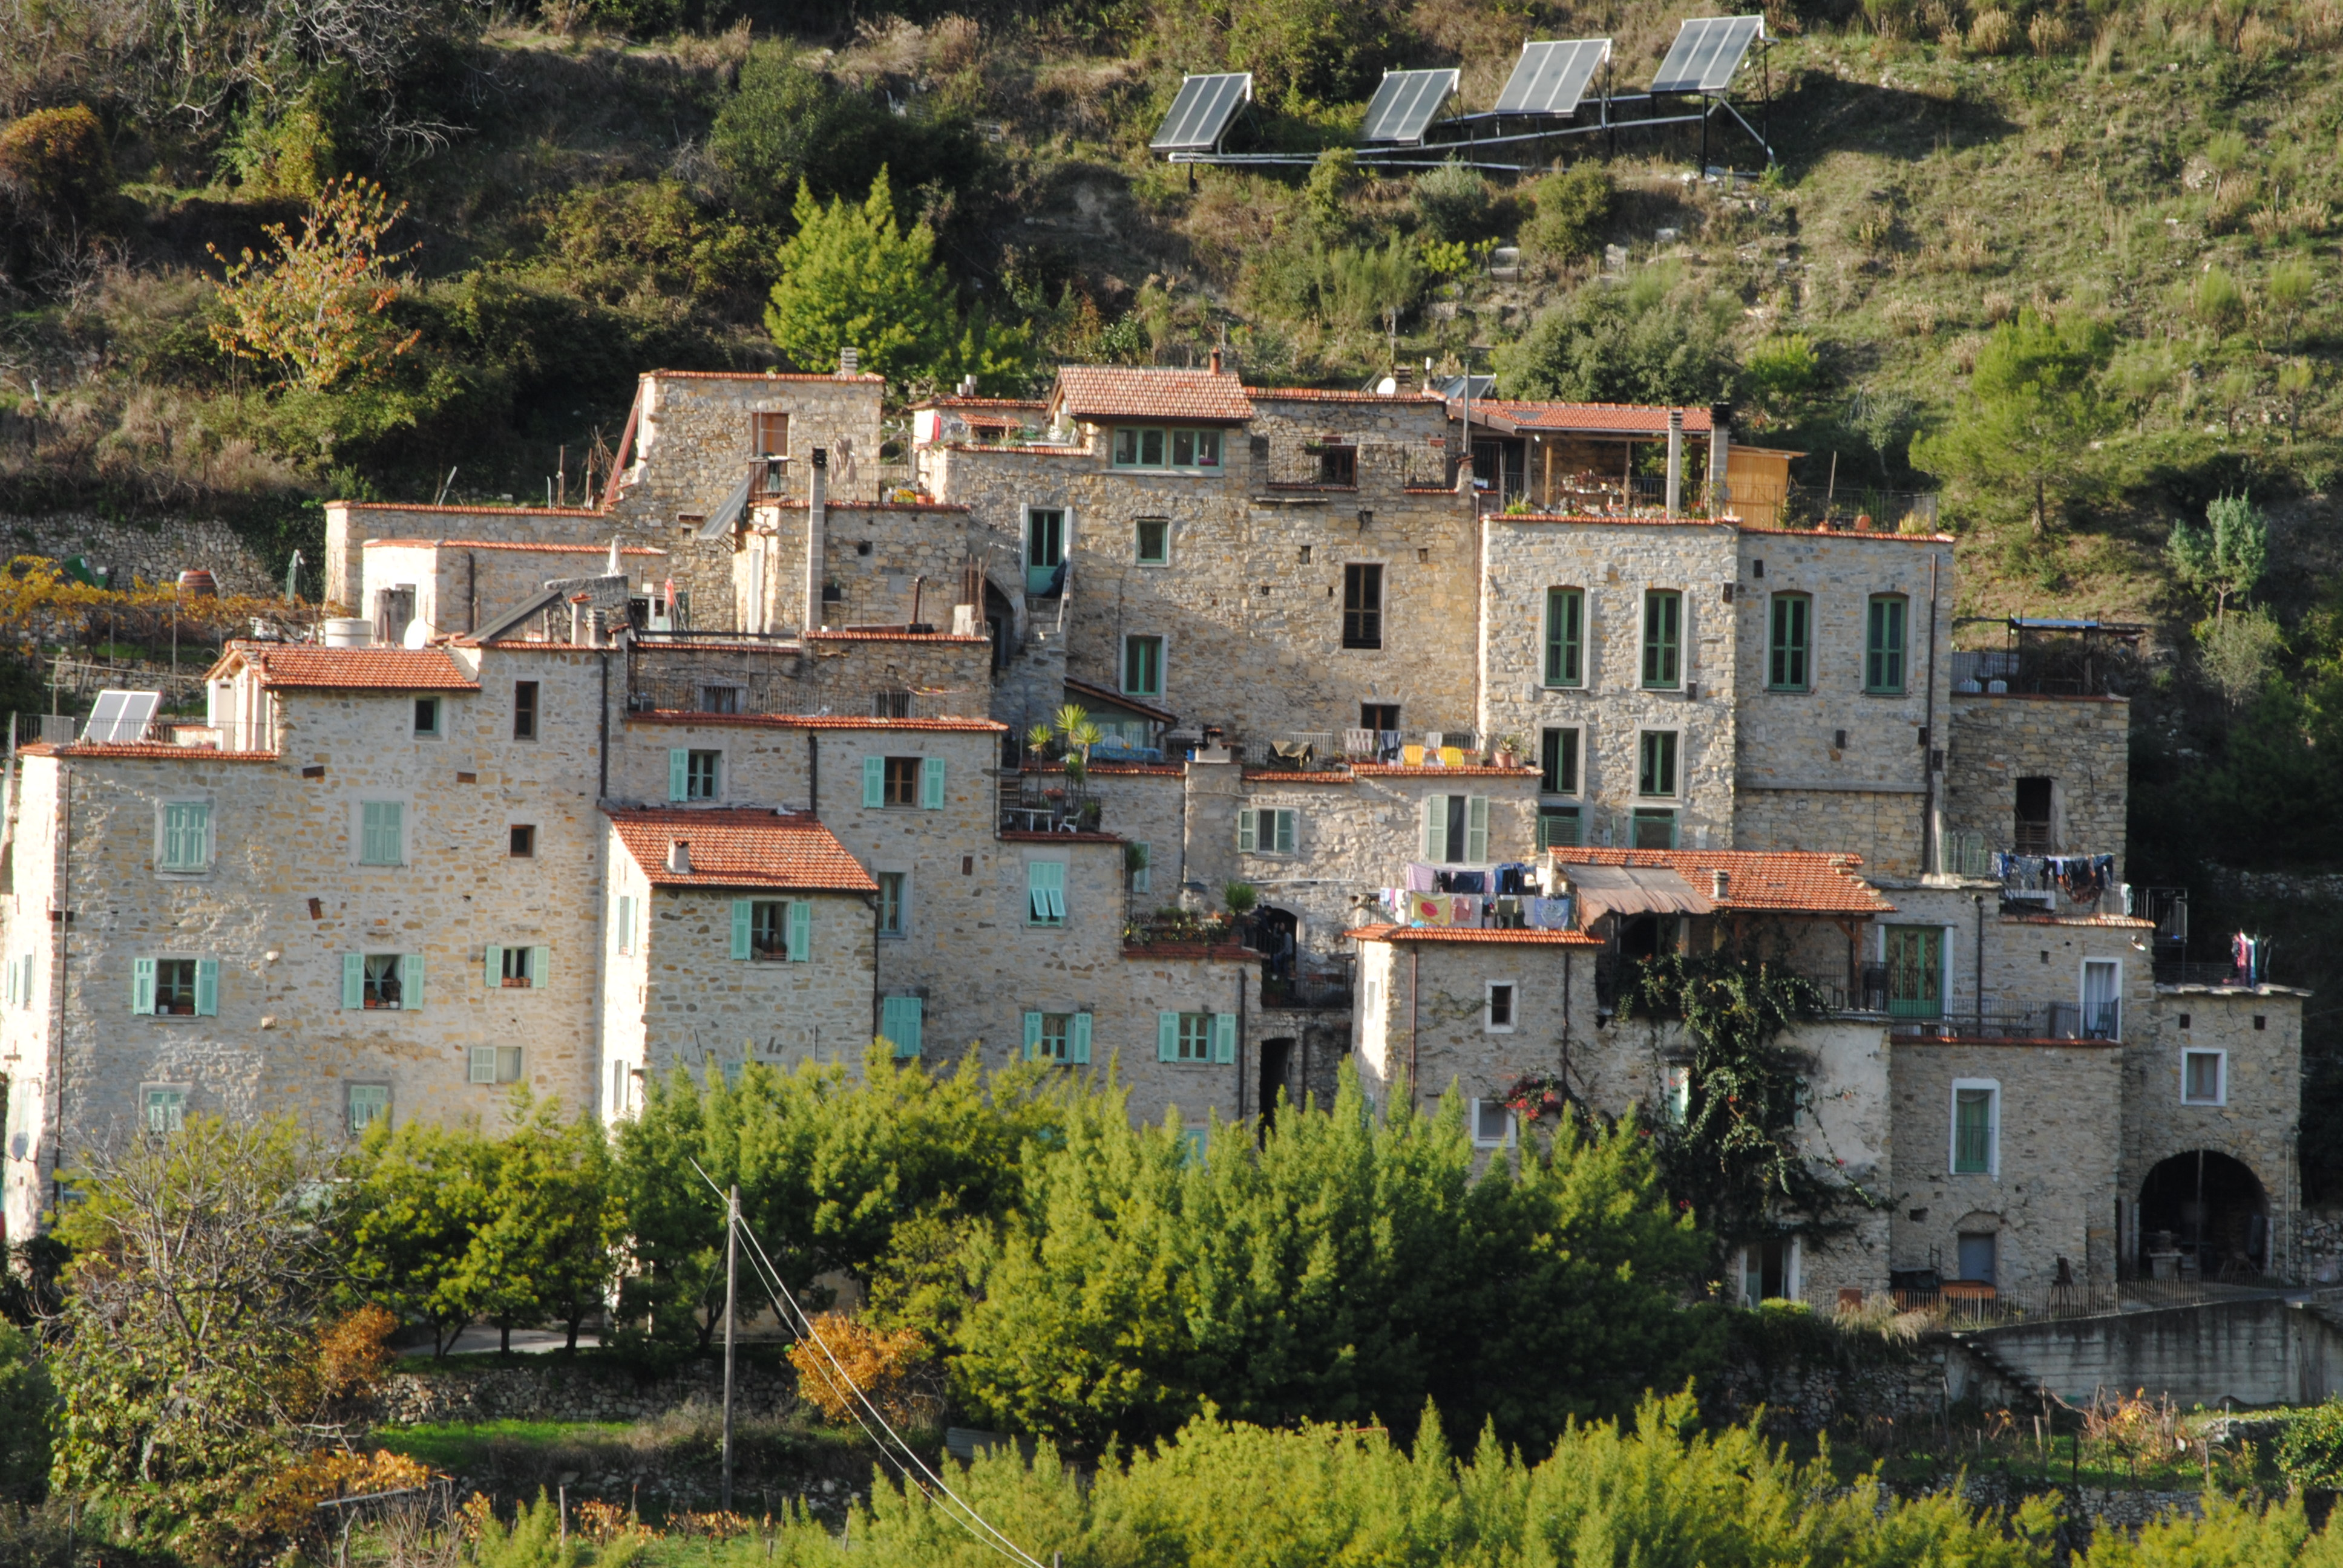 Torri Superiore, Ecovillaggio in Liguria